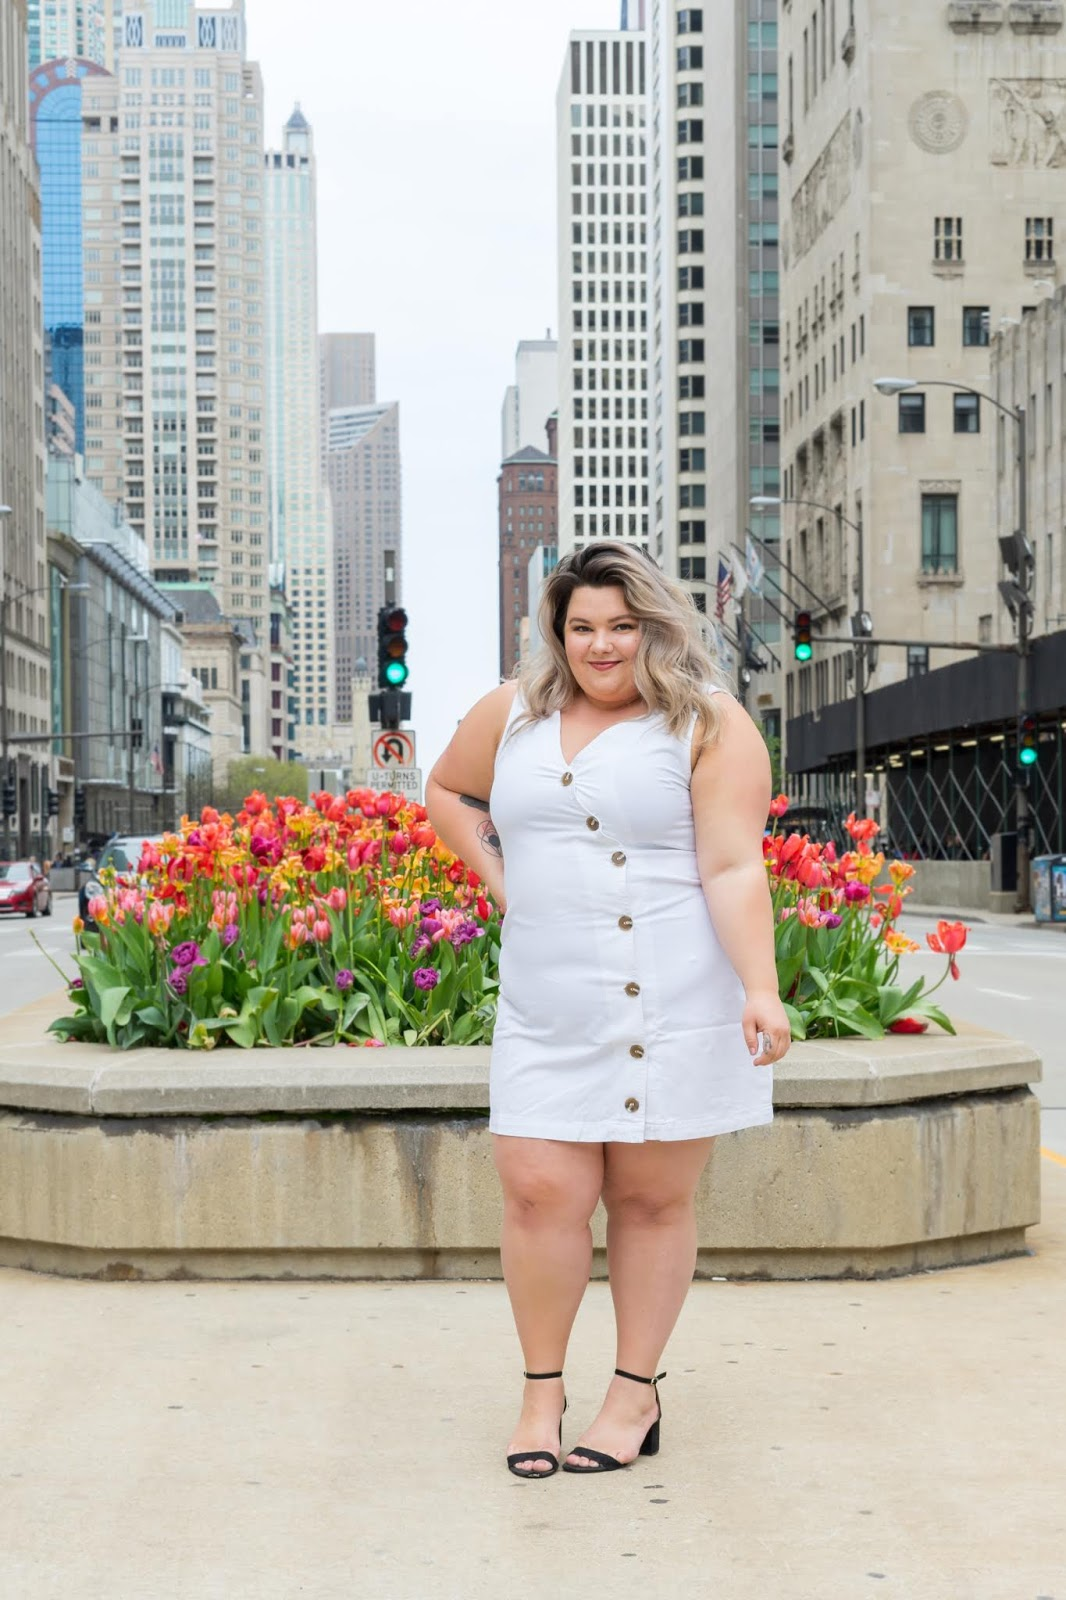 Chicago Plus Size Petite Fashion Blogger, YouTuber, and model Natalie Craig, of Natalie in the City, review's CoEdition and Warp + Weft.